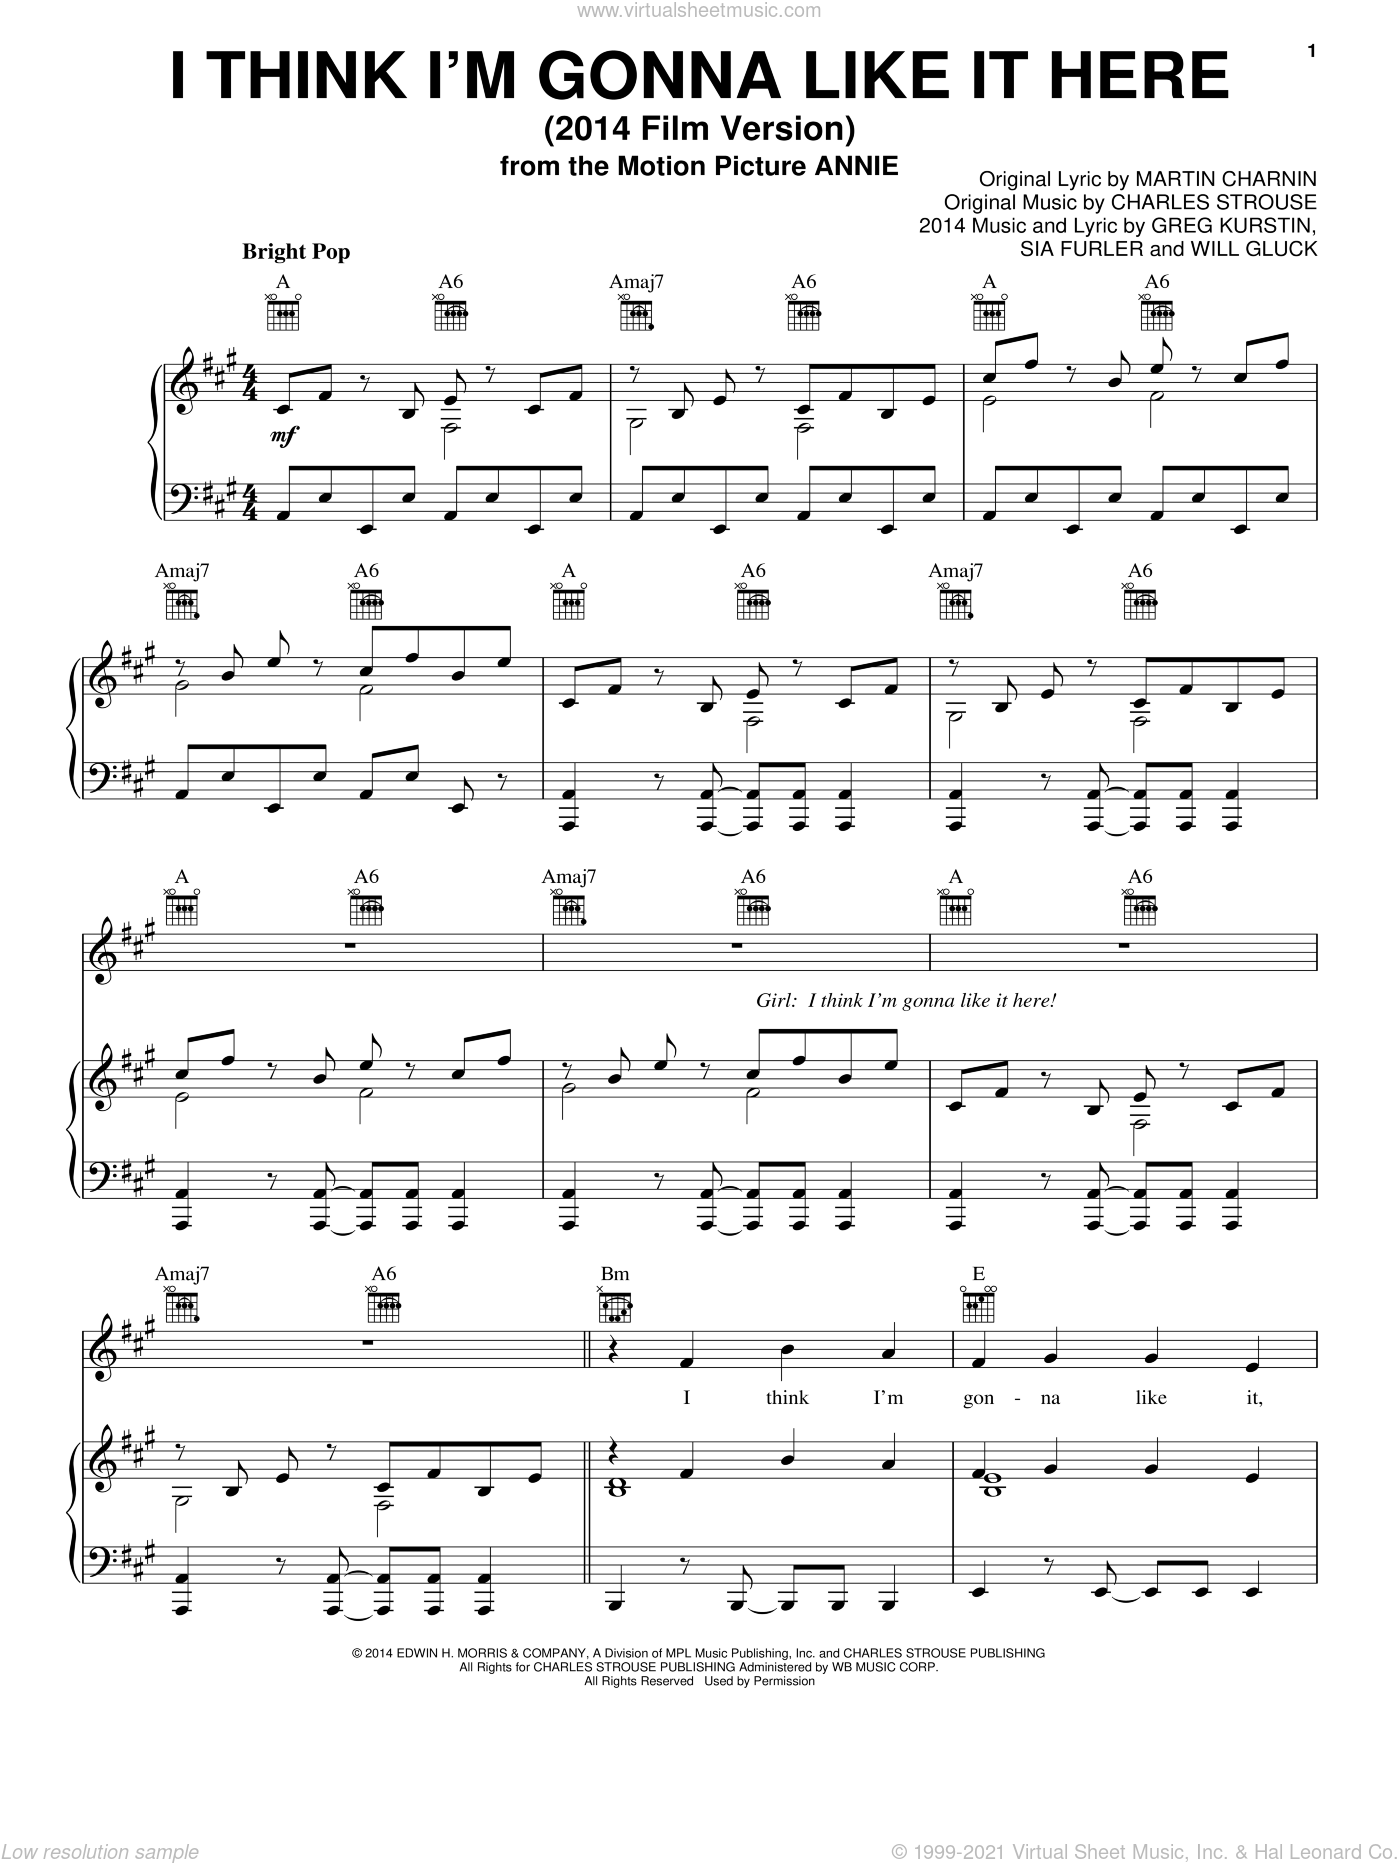 I Think I'm Gonna Like It Here (2014 Film Version) sheet music for voice, piano or guitar by Charles Strouse, Christoph Willibald Gluck, Greg Kurstin, Martin Charnin and Sia Furler, intermediate skill level